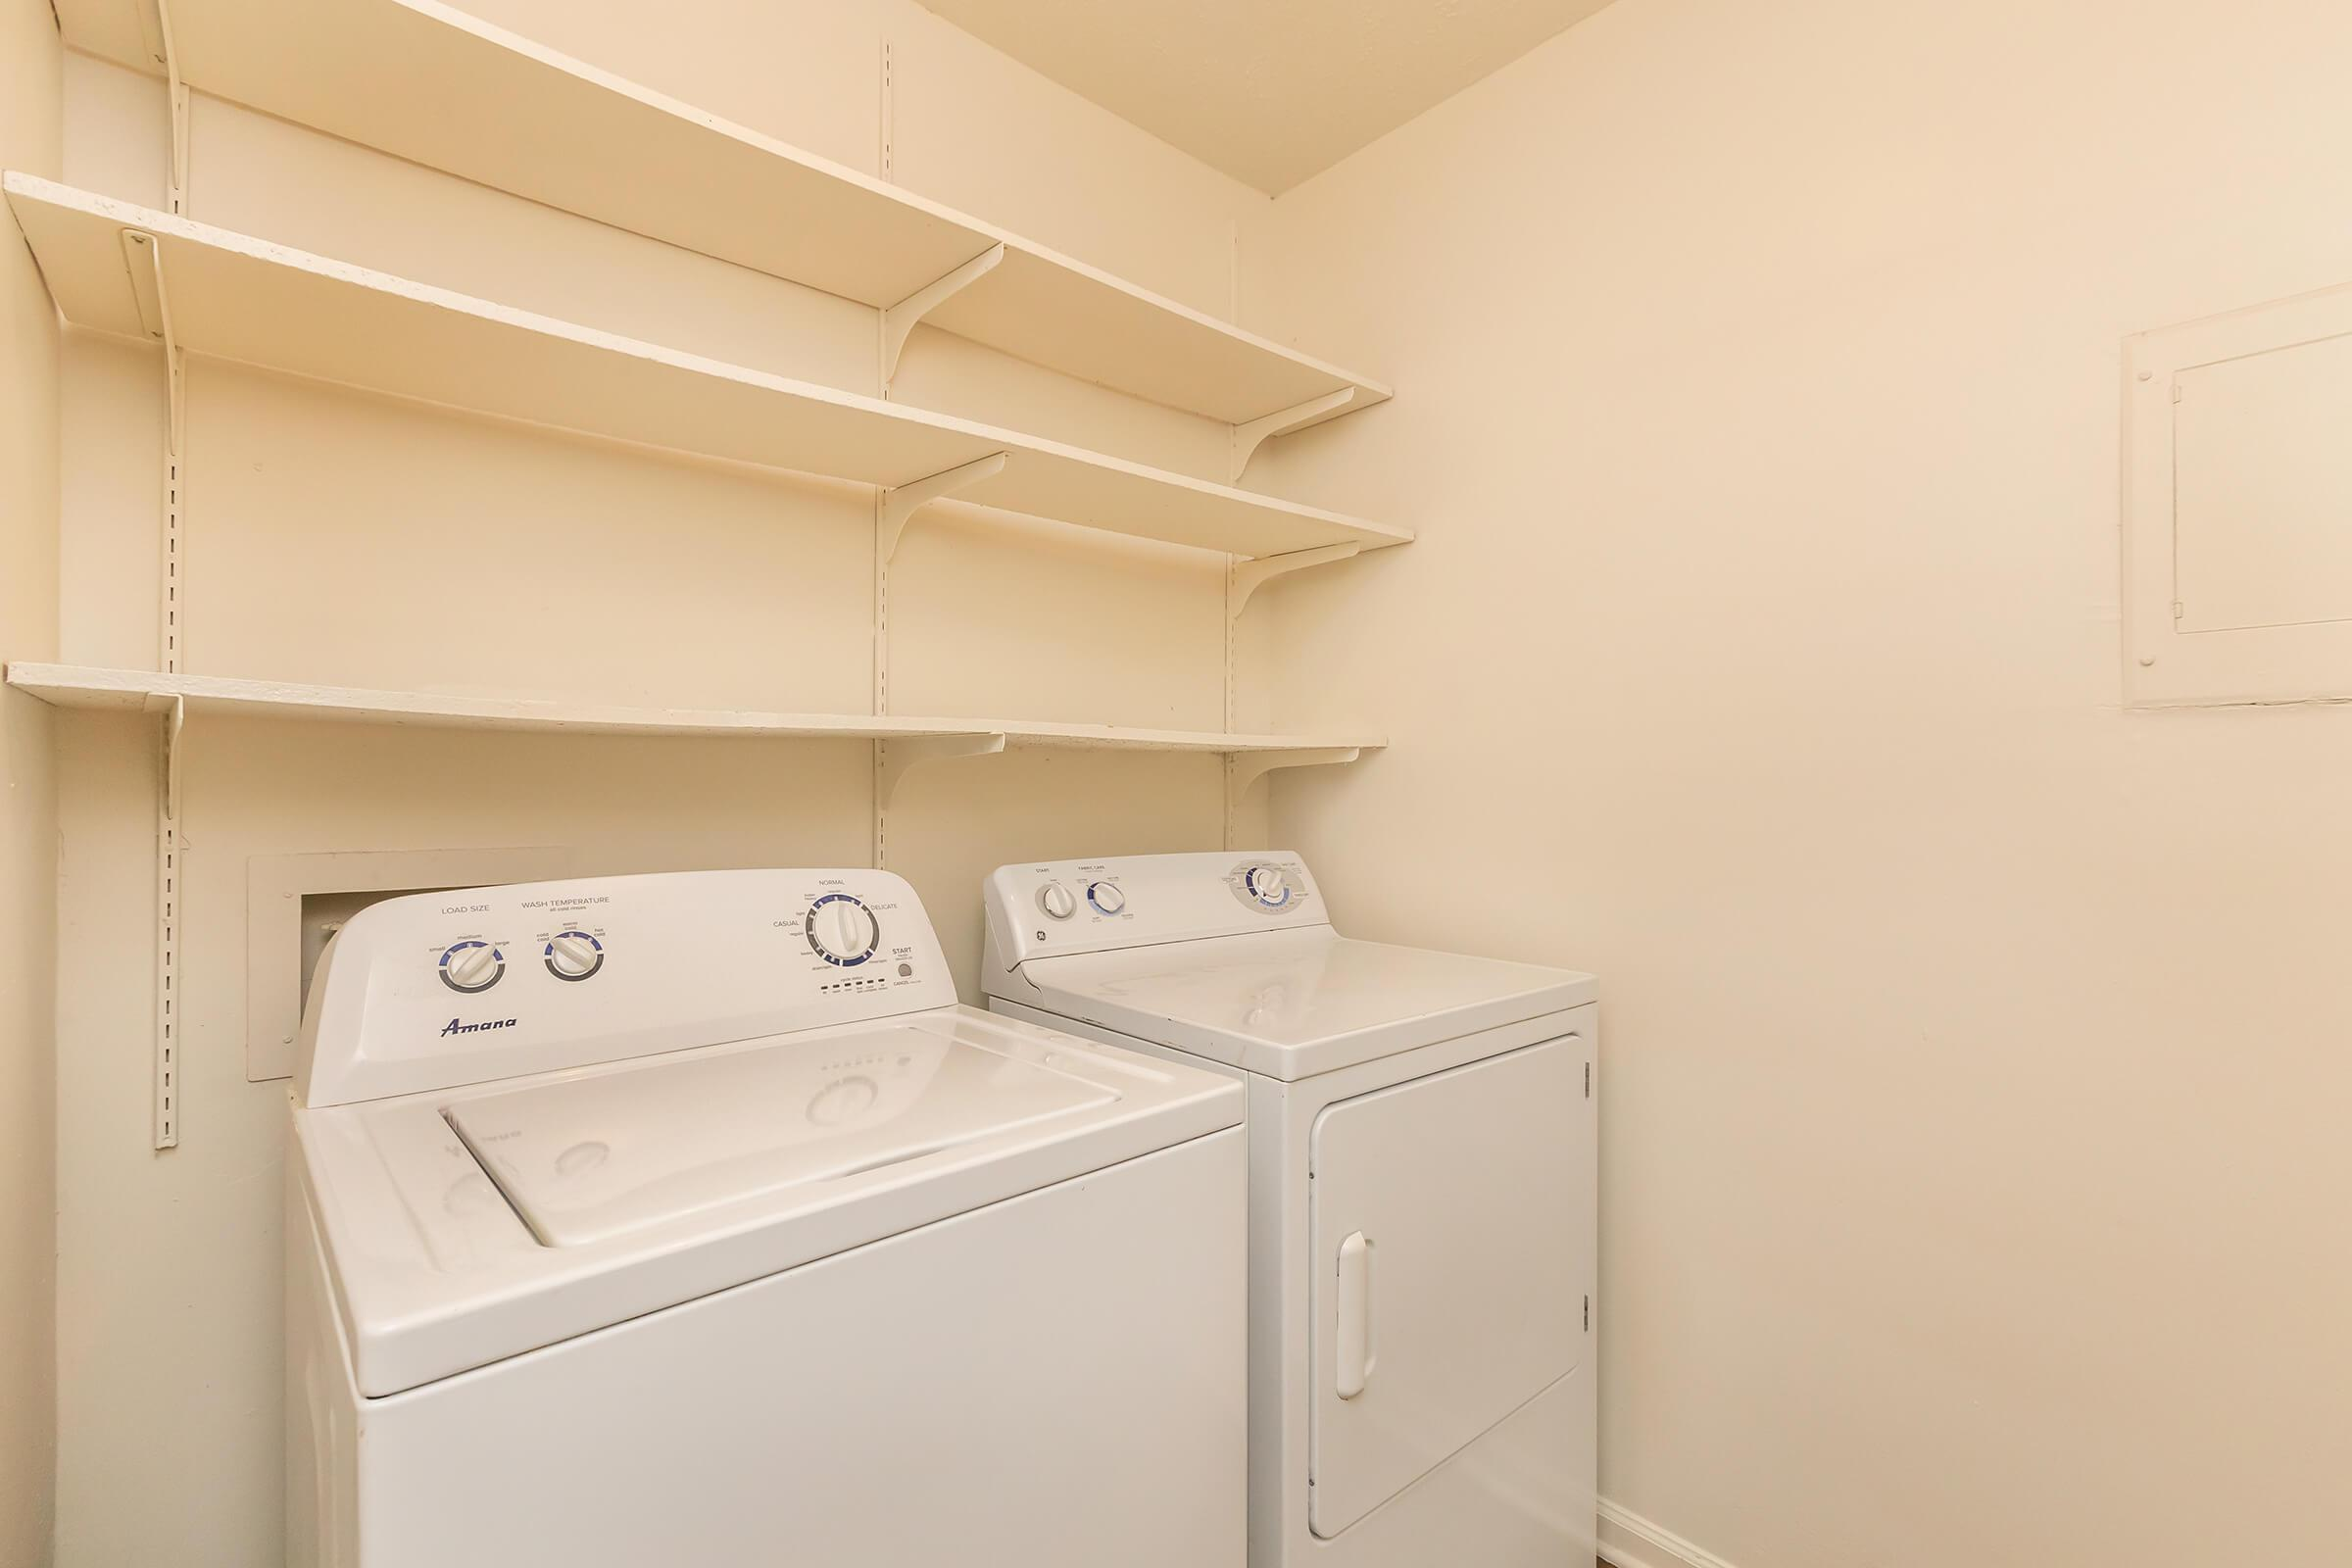 IN-HOME WASHER AND DRYER AT UNIVERSITY VILLAGE AT WALKER ROAD